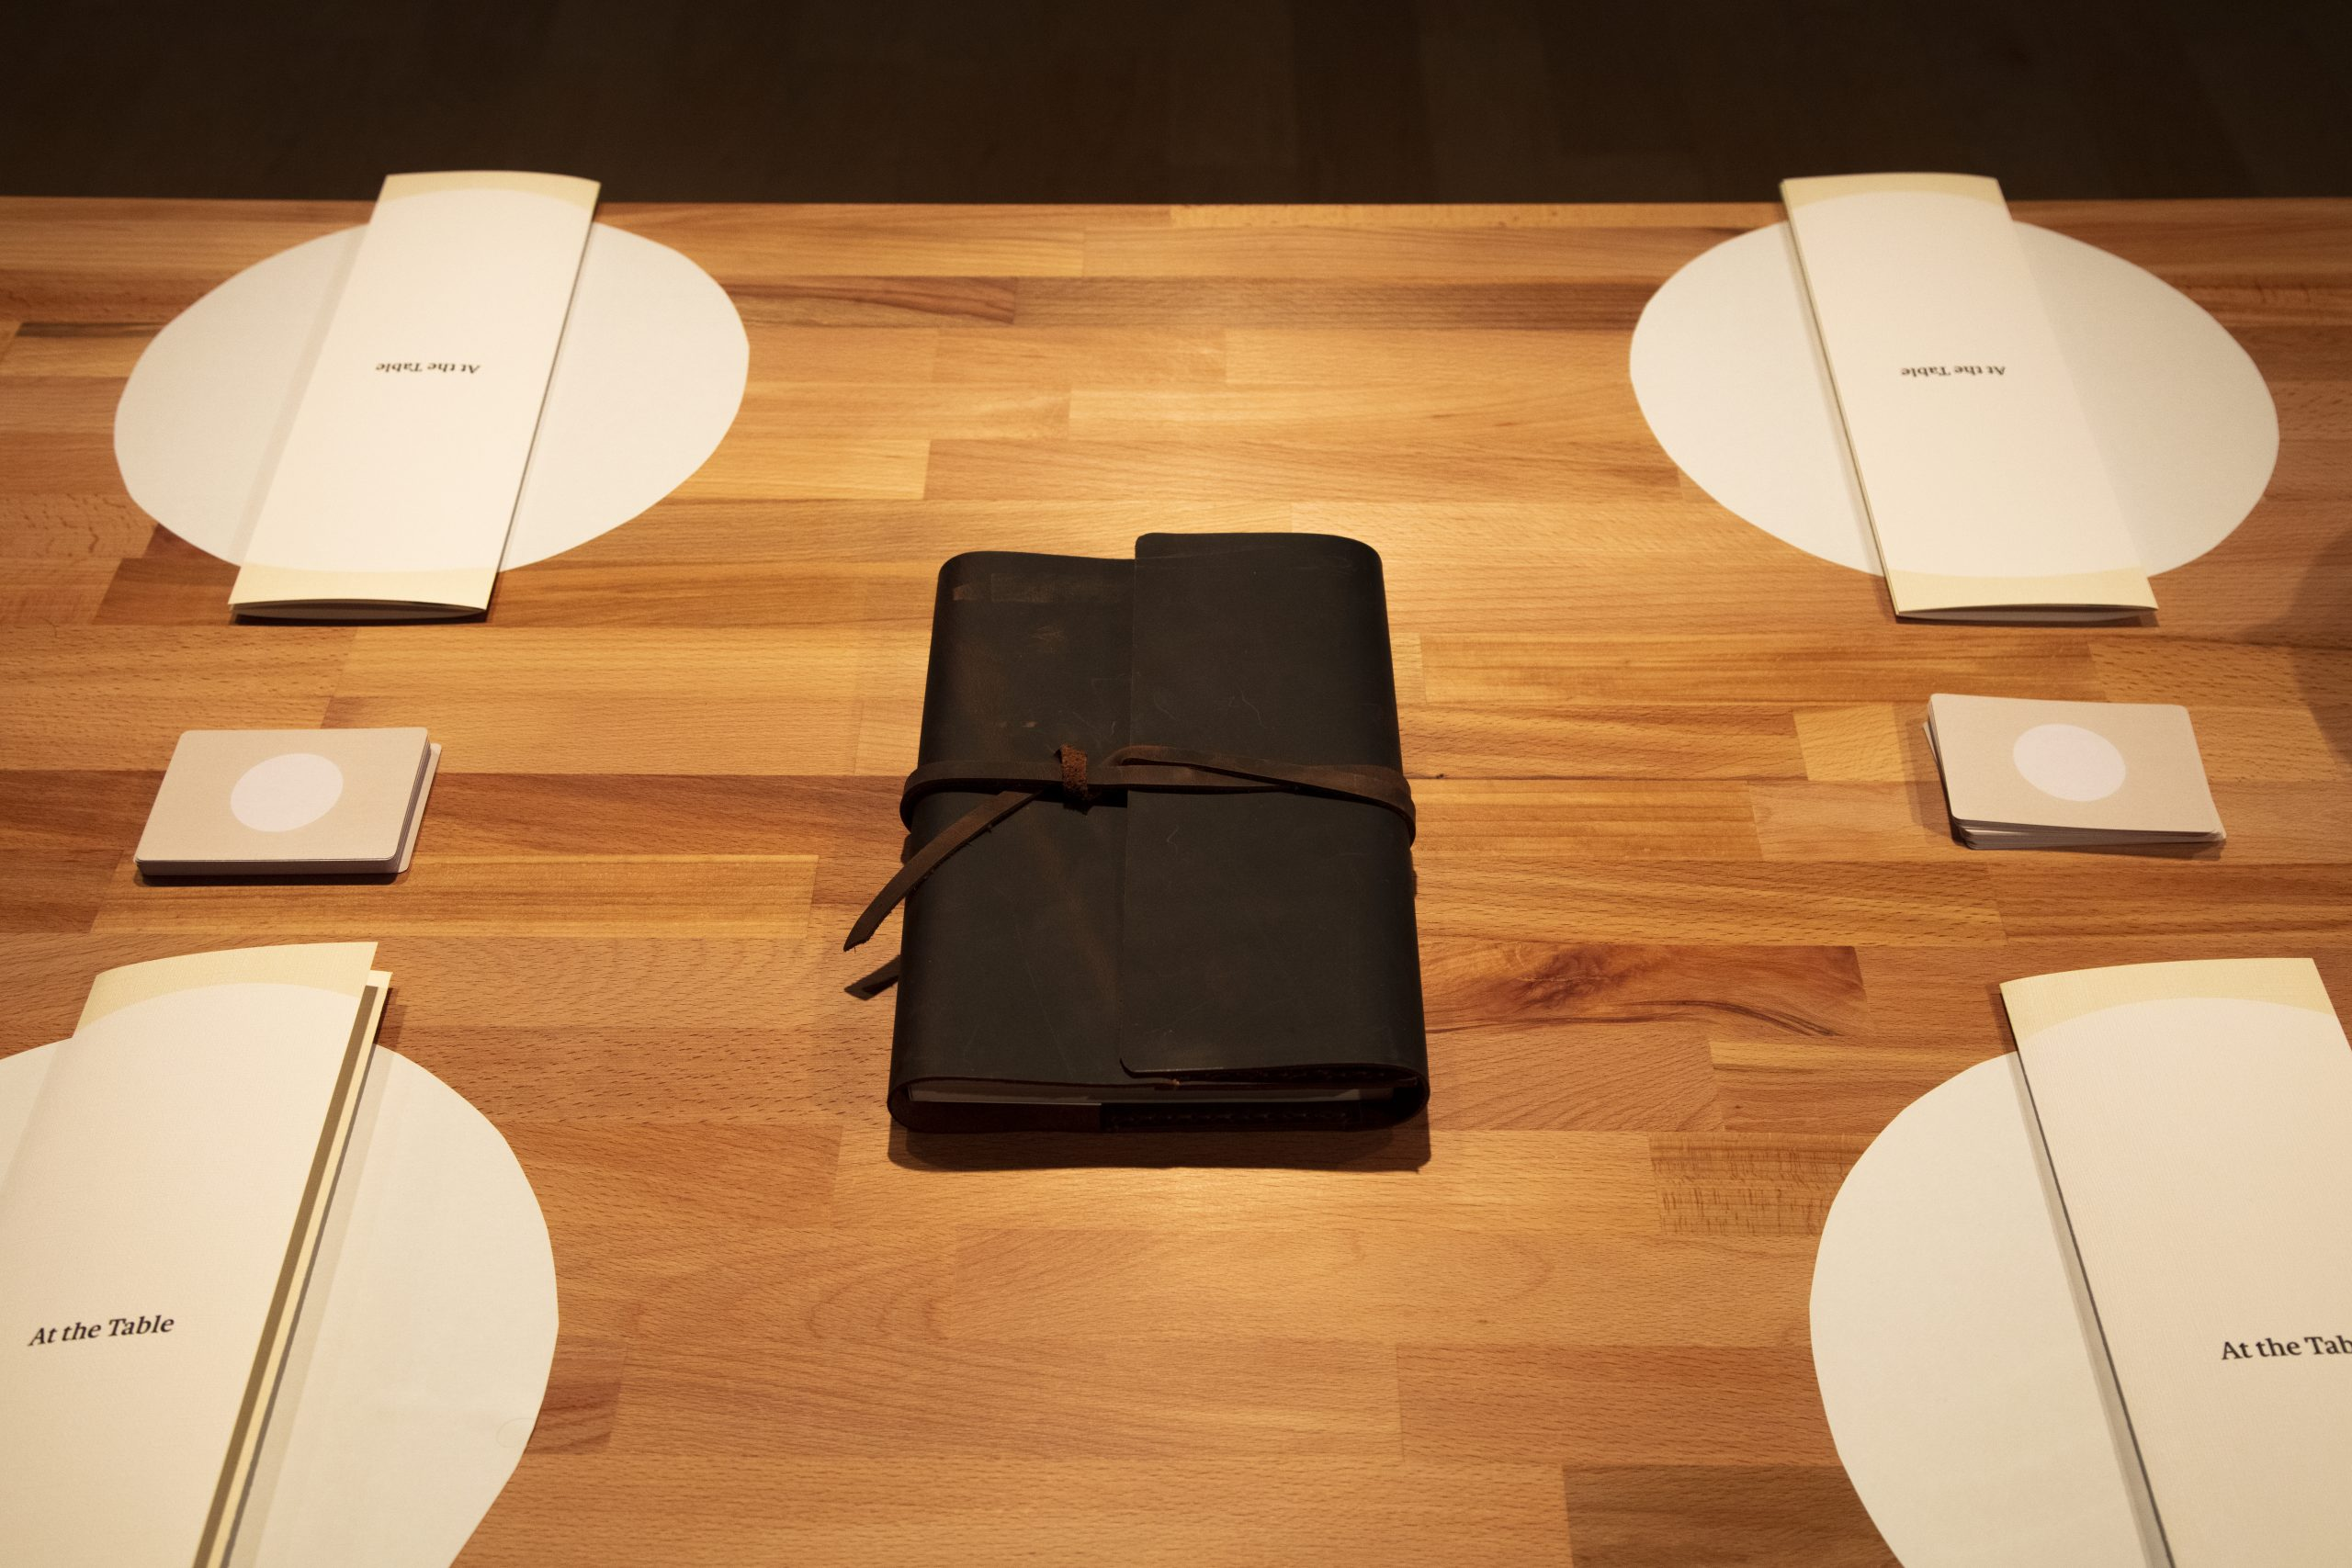 leather cover on table